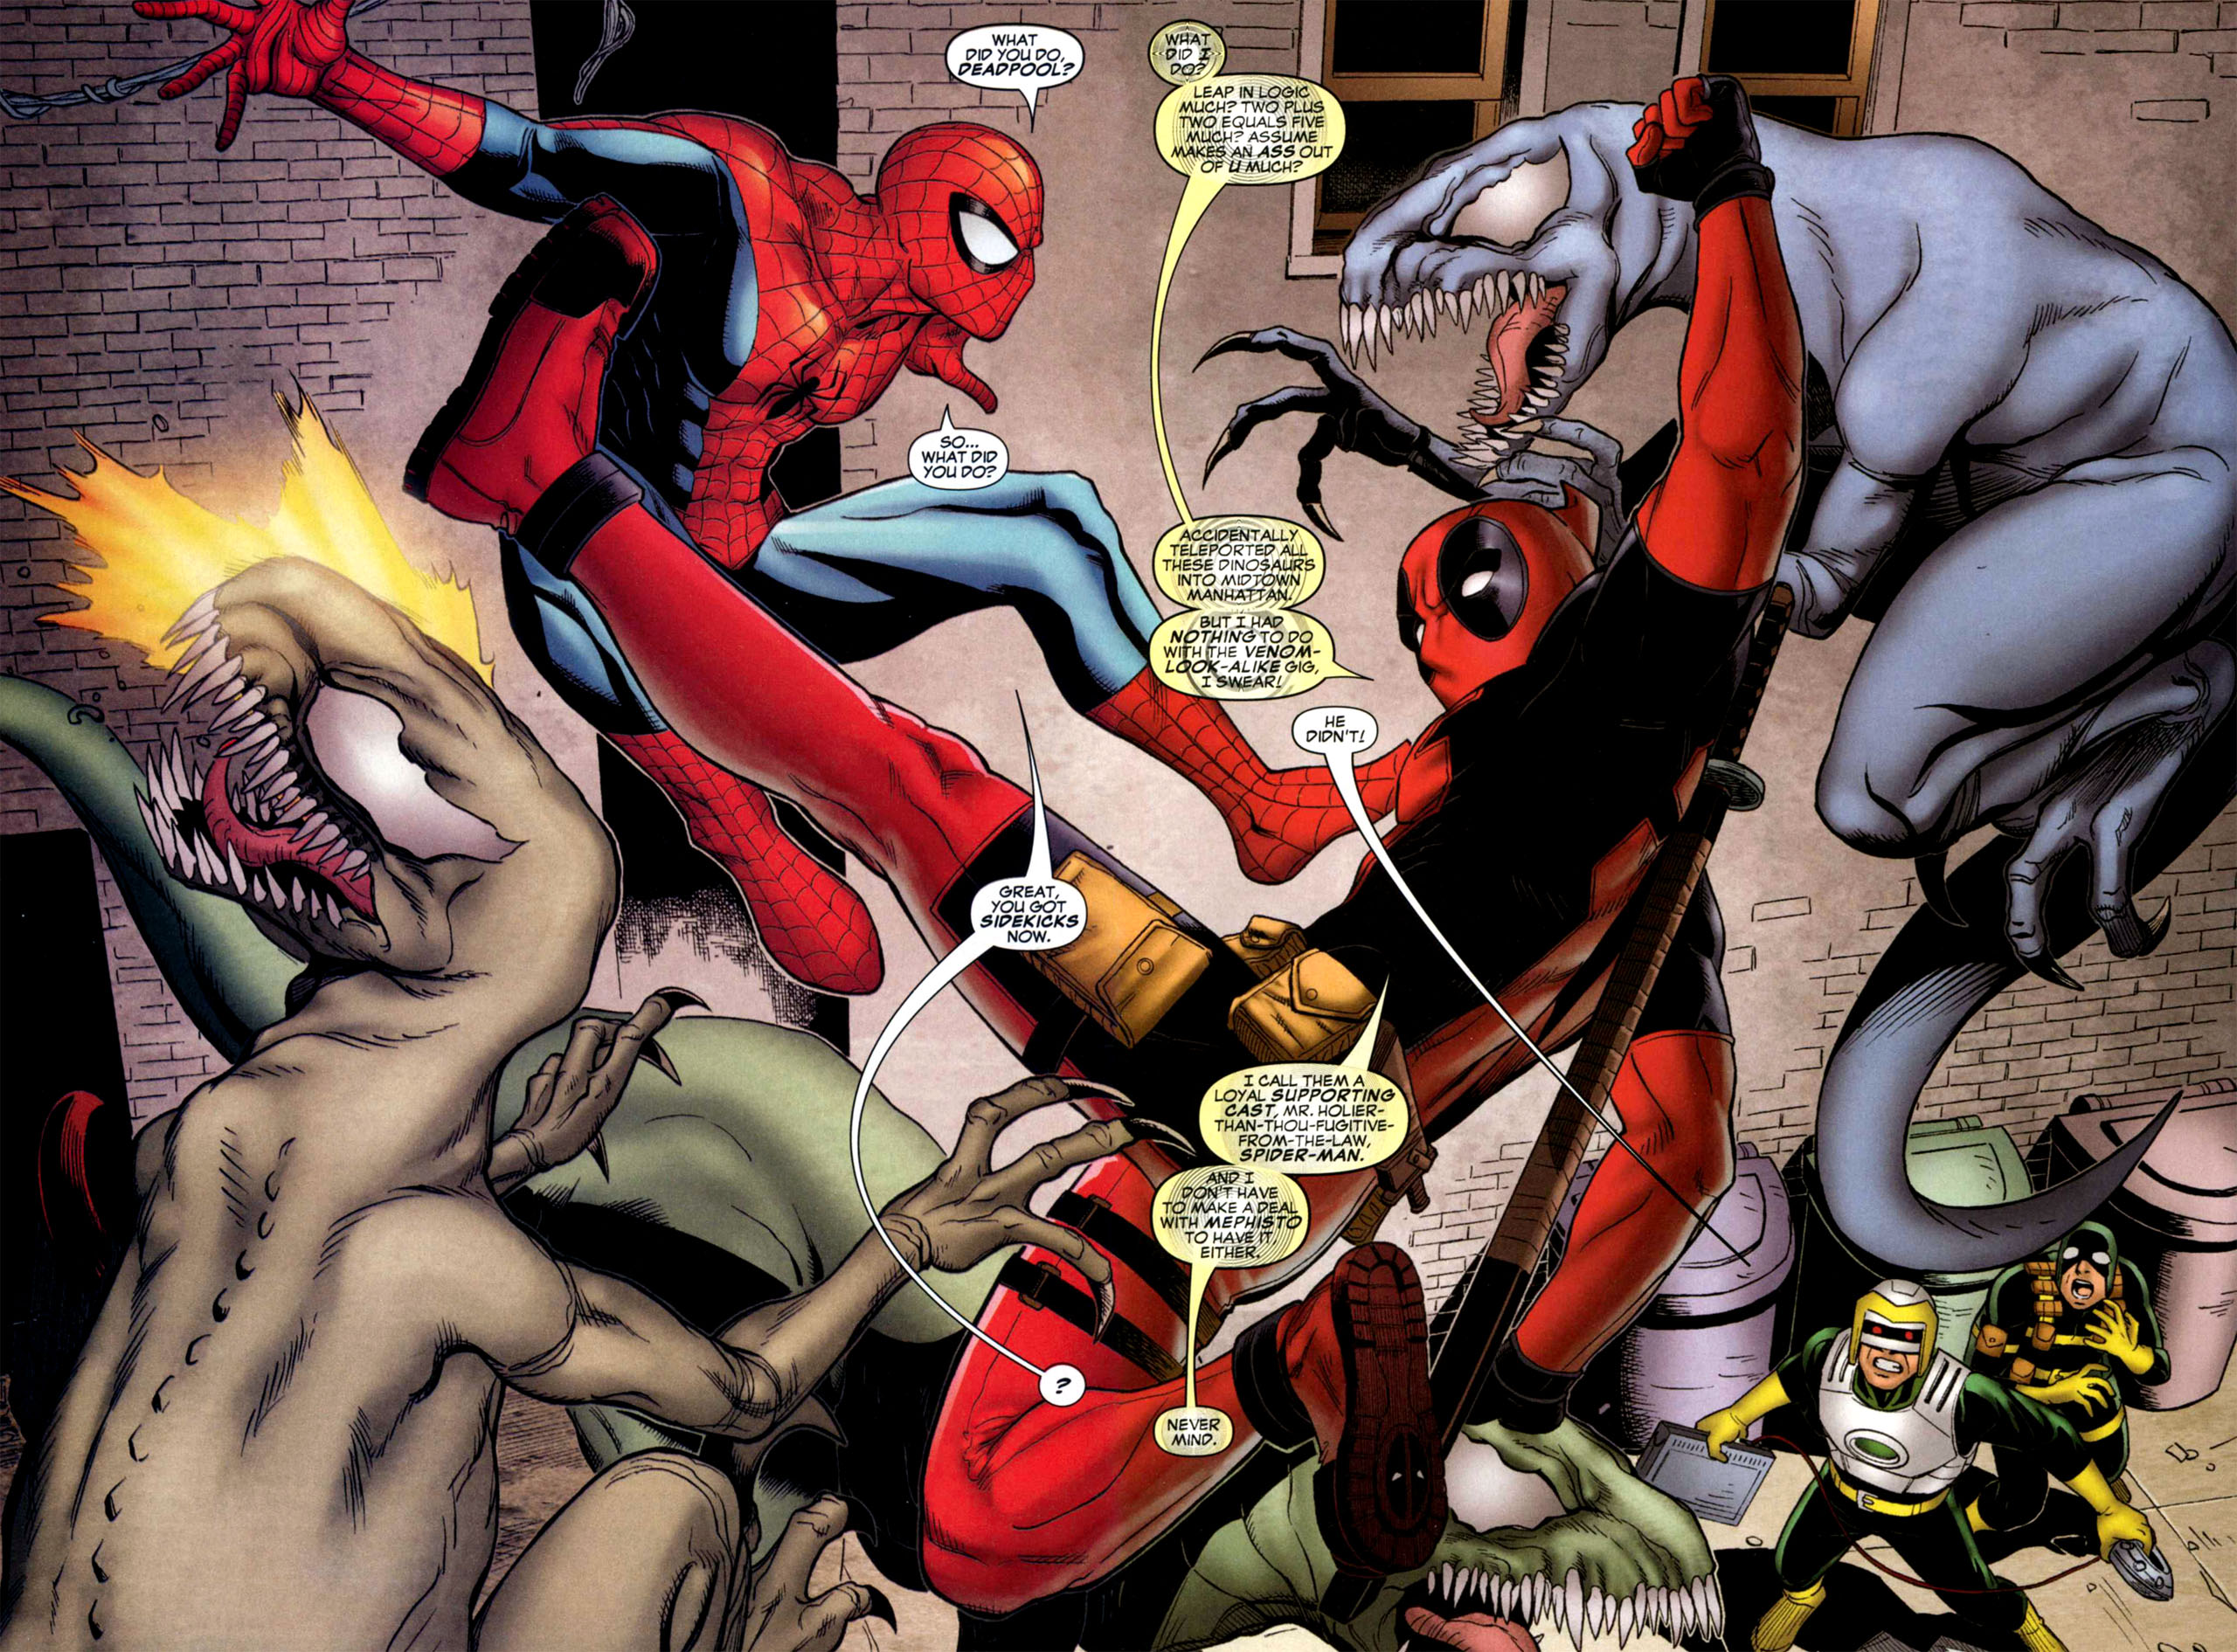 deadpool and spider man courtesy of marvel